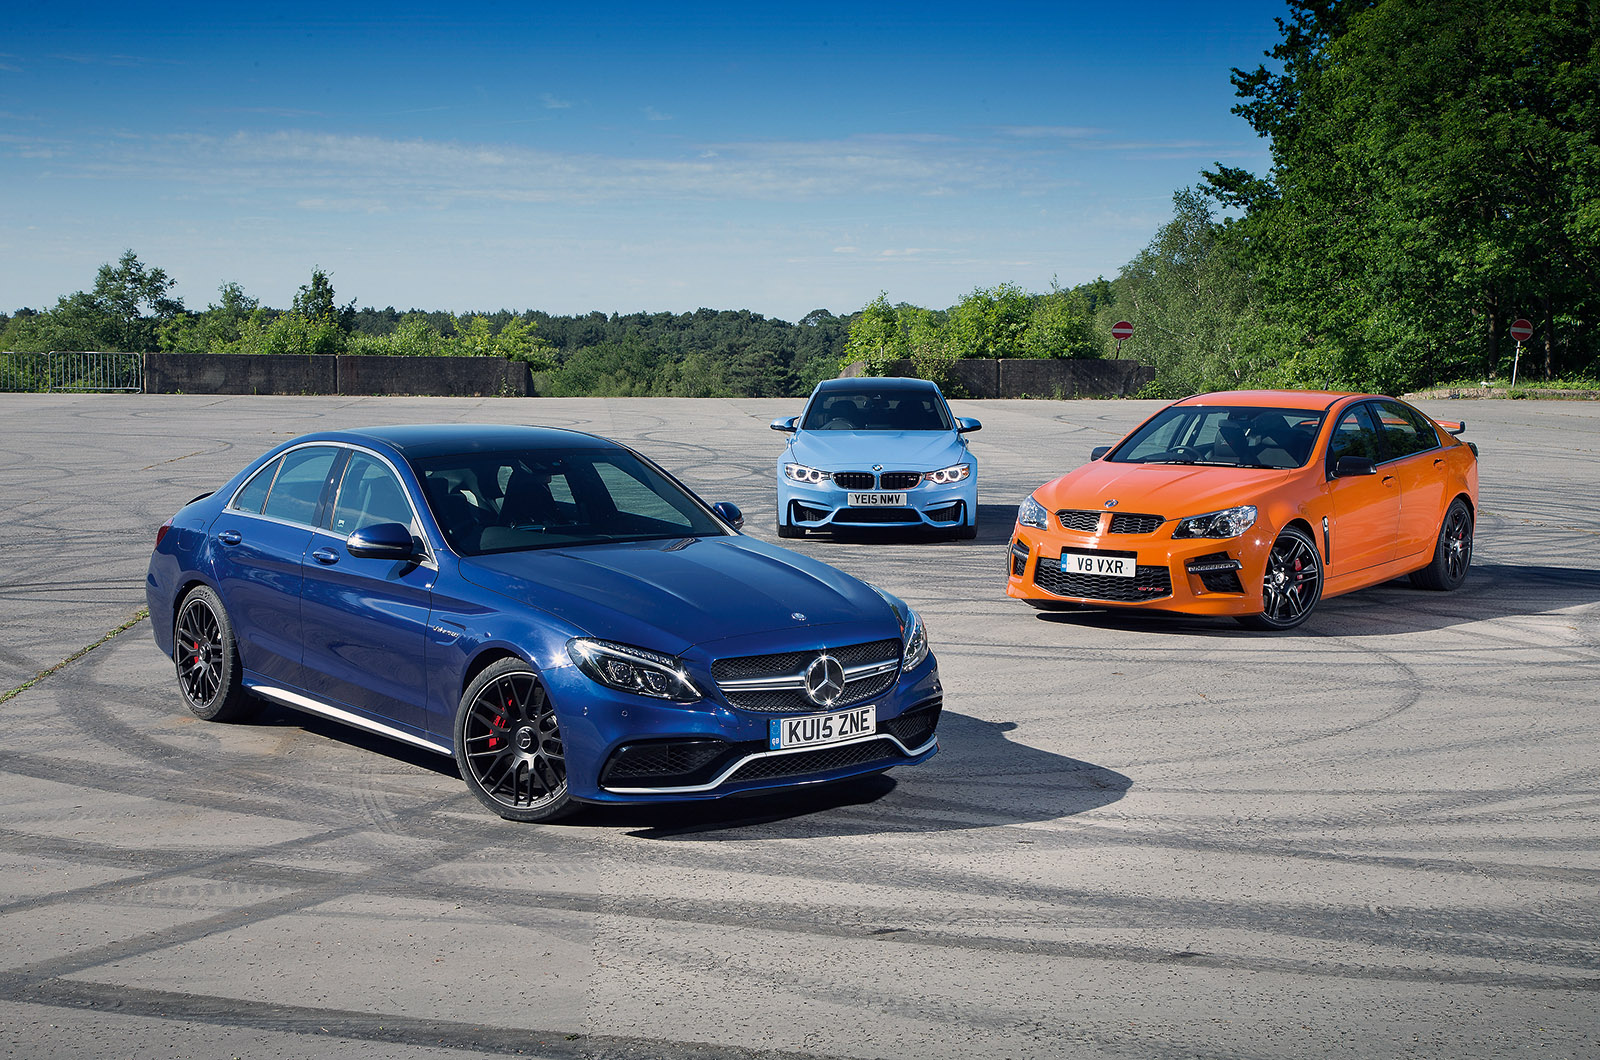 hight resolution of mercedes amg c63 versus bmw m3 and vauxhall vxr8 gts